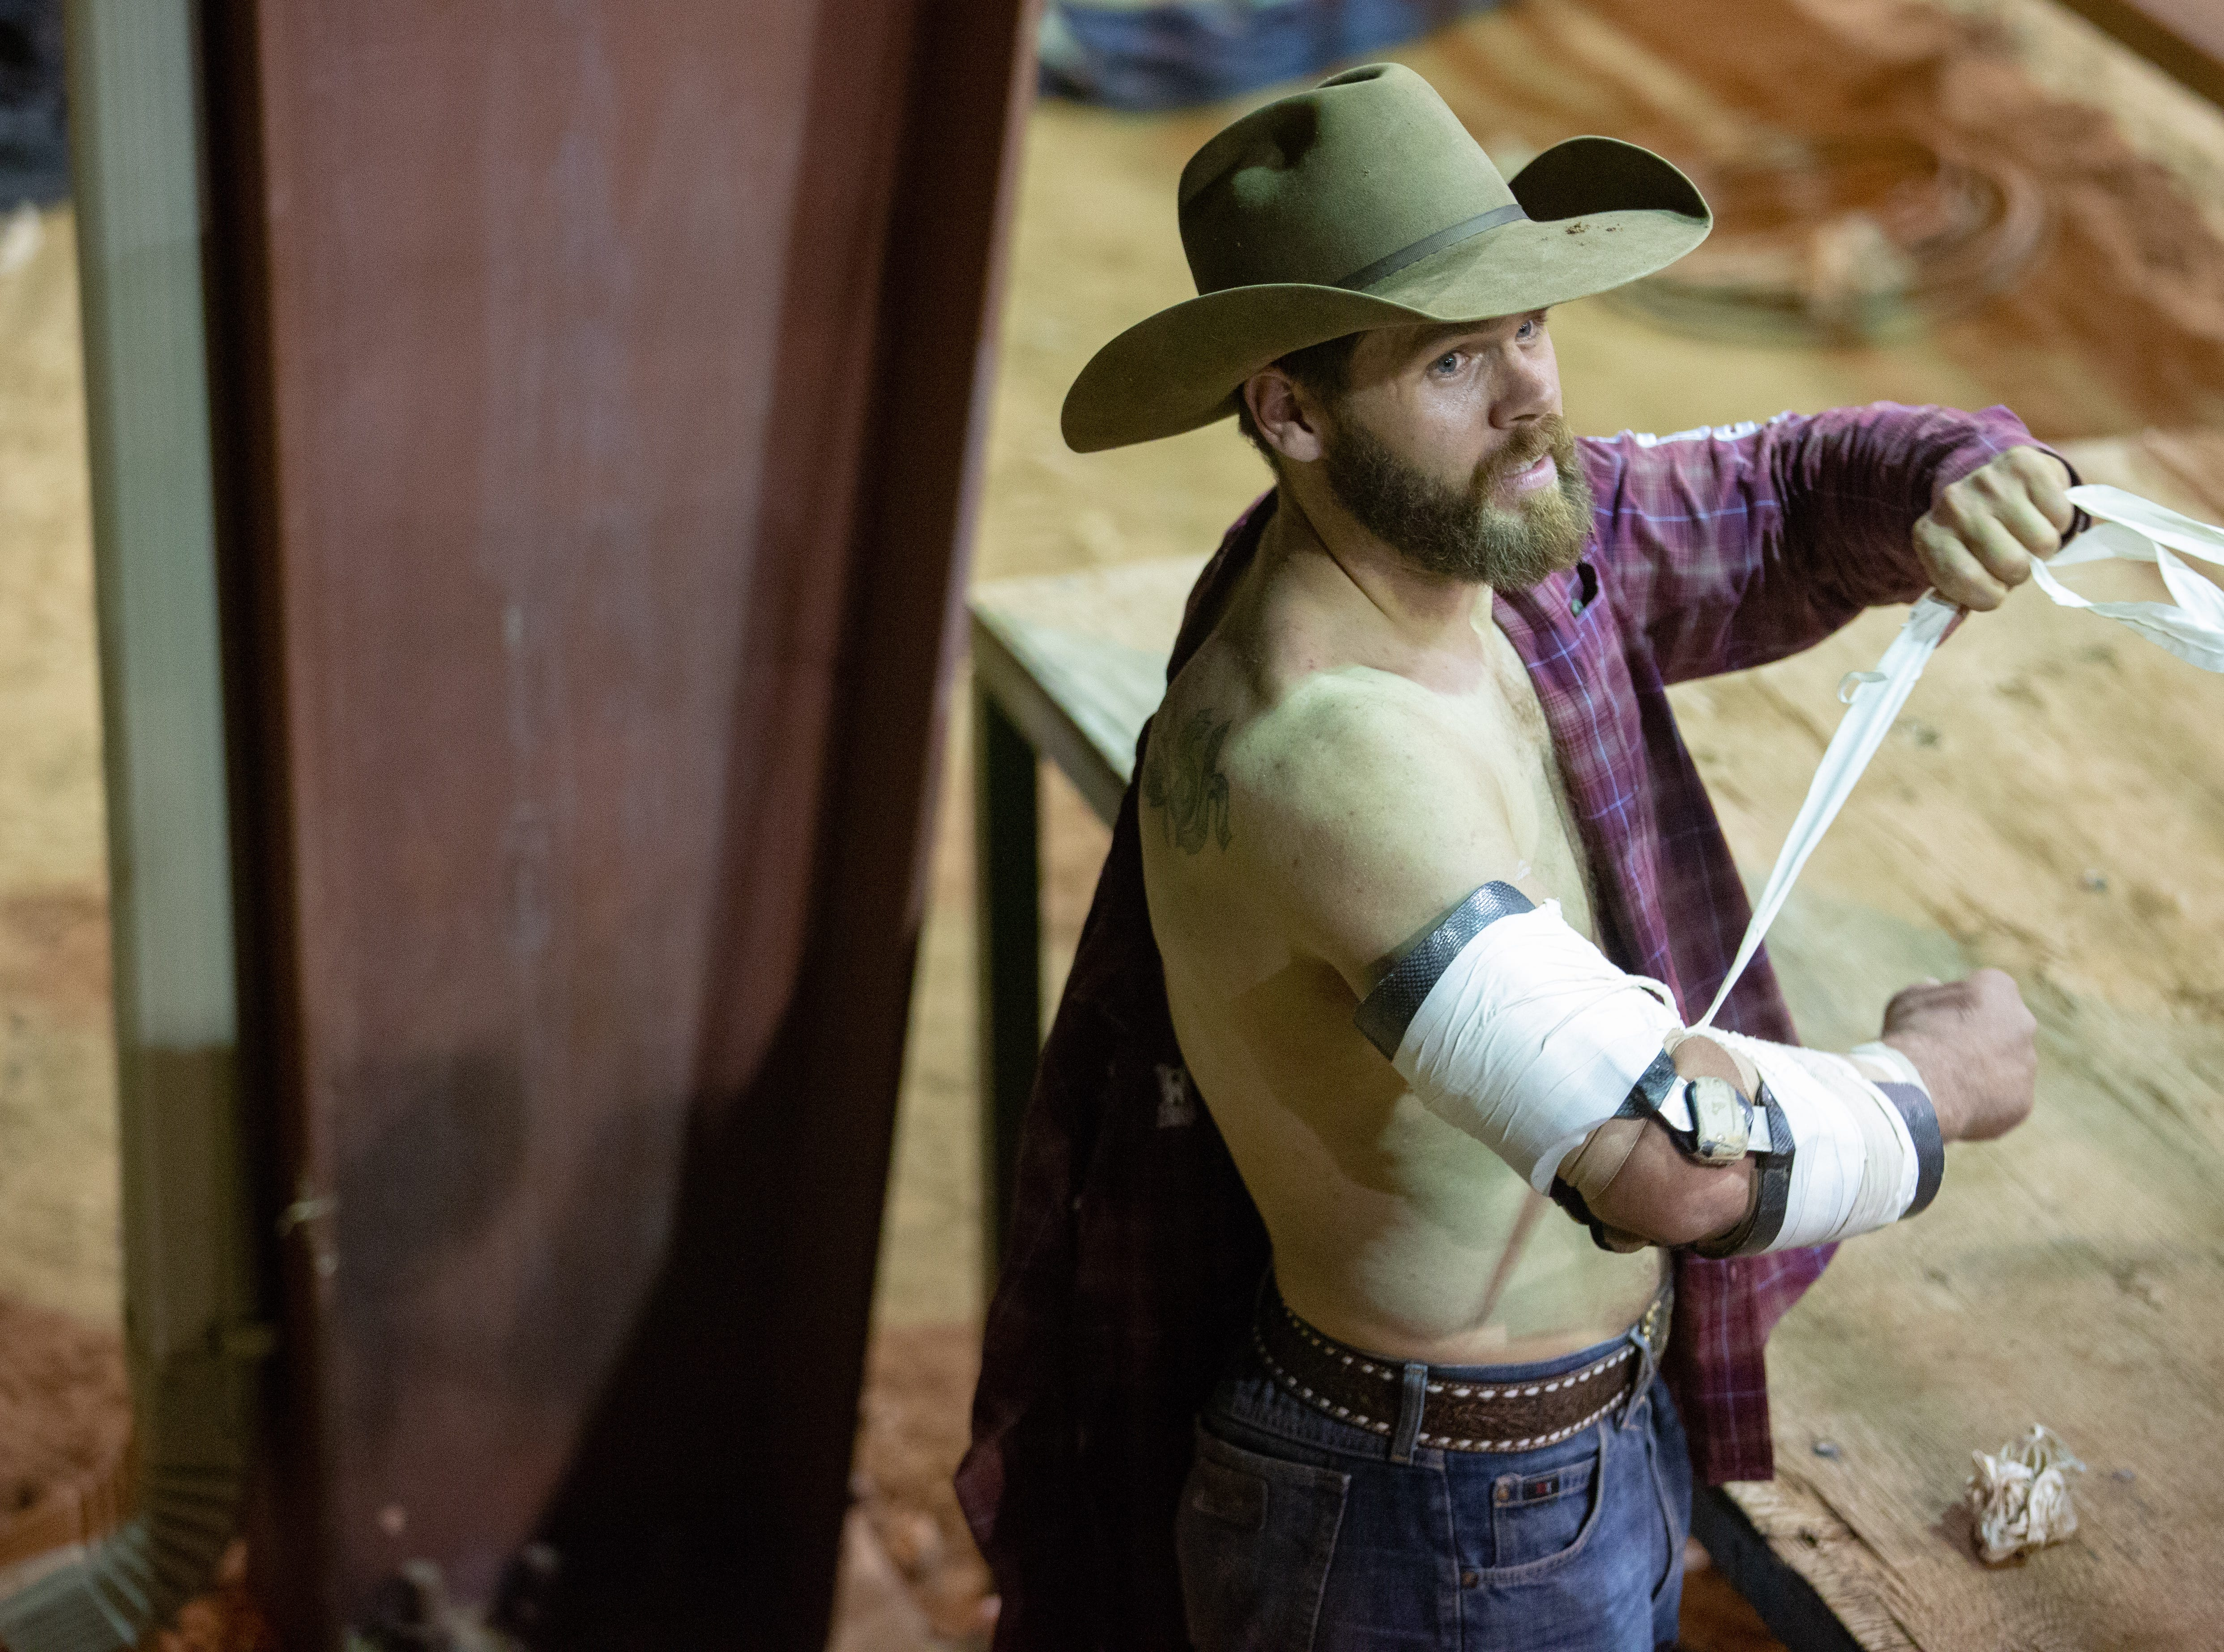 Luke Creasy, of Hobbs, New Mexico, unwraps his arm on on Saturday, Sept. 29, 2018, during the Southern New Mexico State Fair & Rodeo at the Southern New Mexico State Fairgrounds.